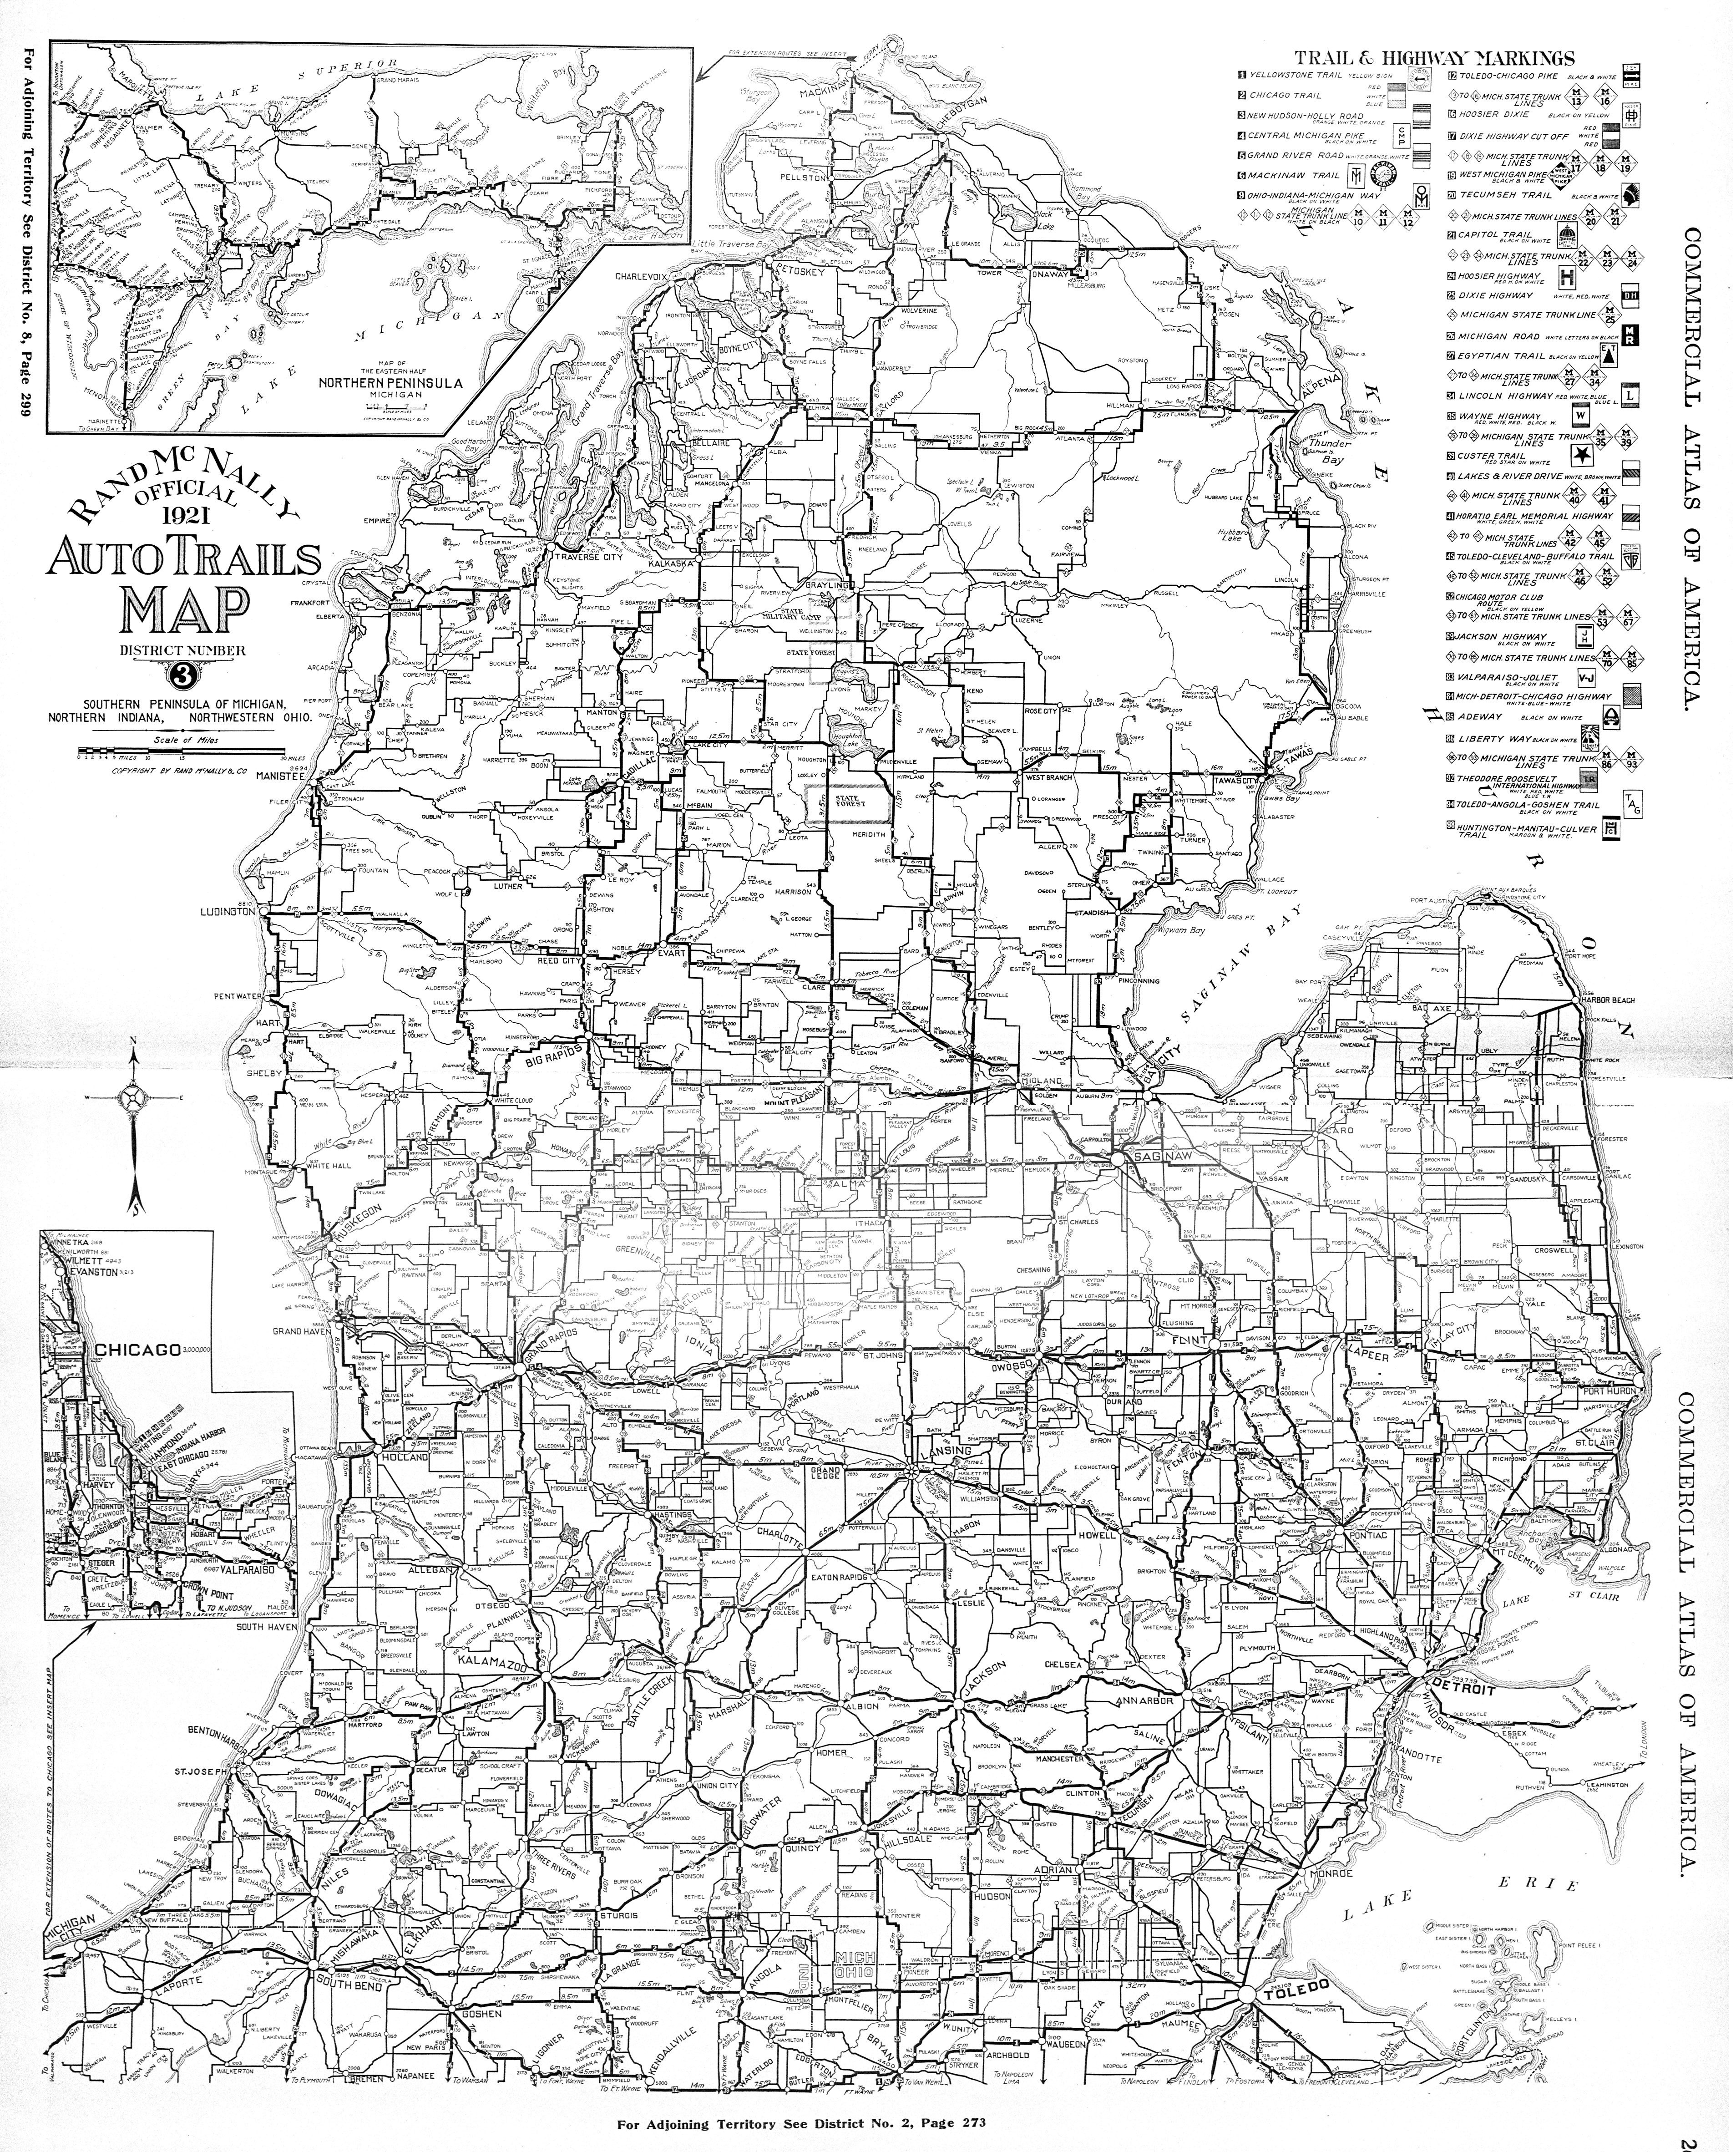 Michigan state university libraries map library footpaths to rand mcnally official 1921 auto trails map district number 3 southern peninsula of michigan northern indiana northwestern ohio publicscrutiny Image collections